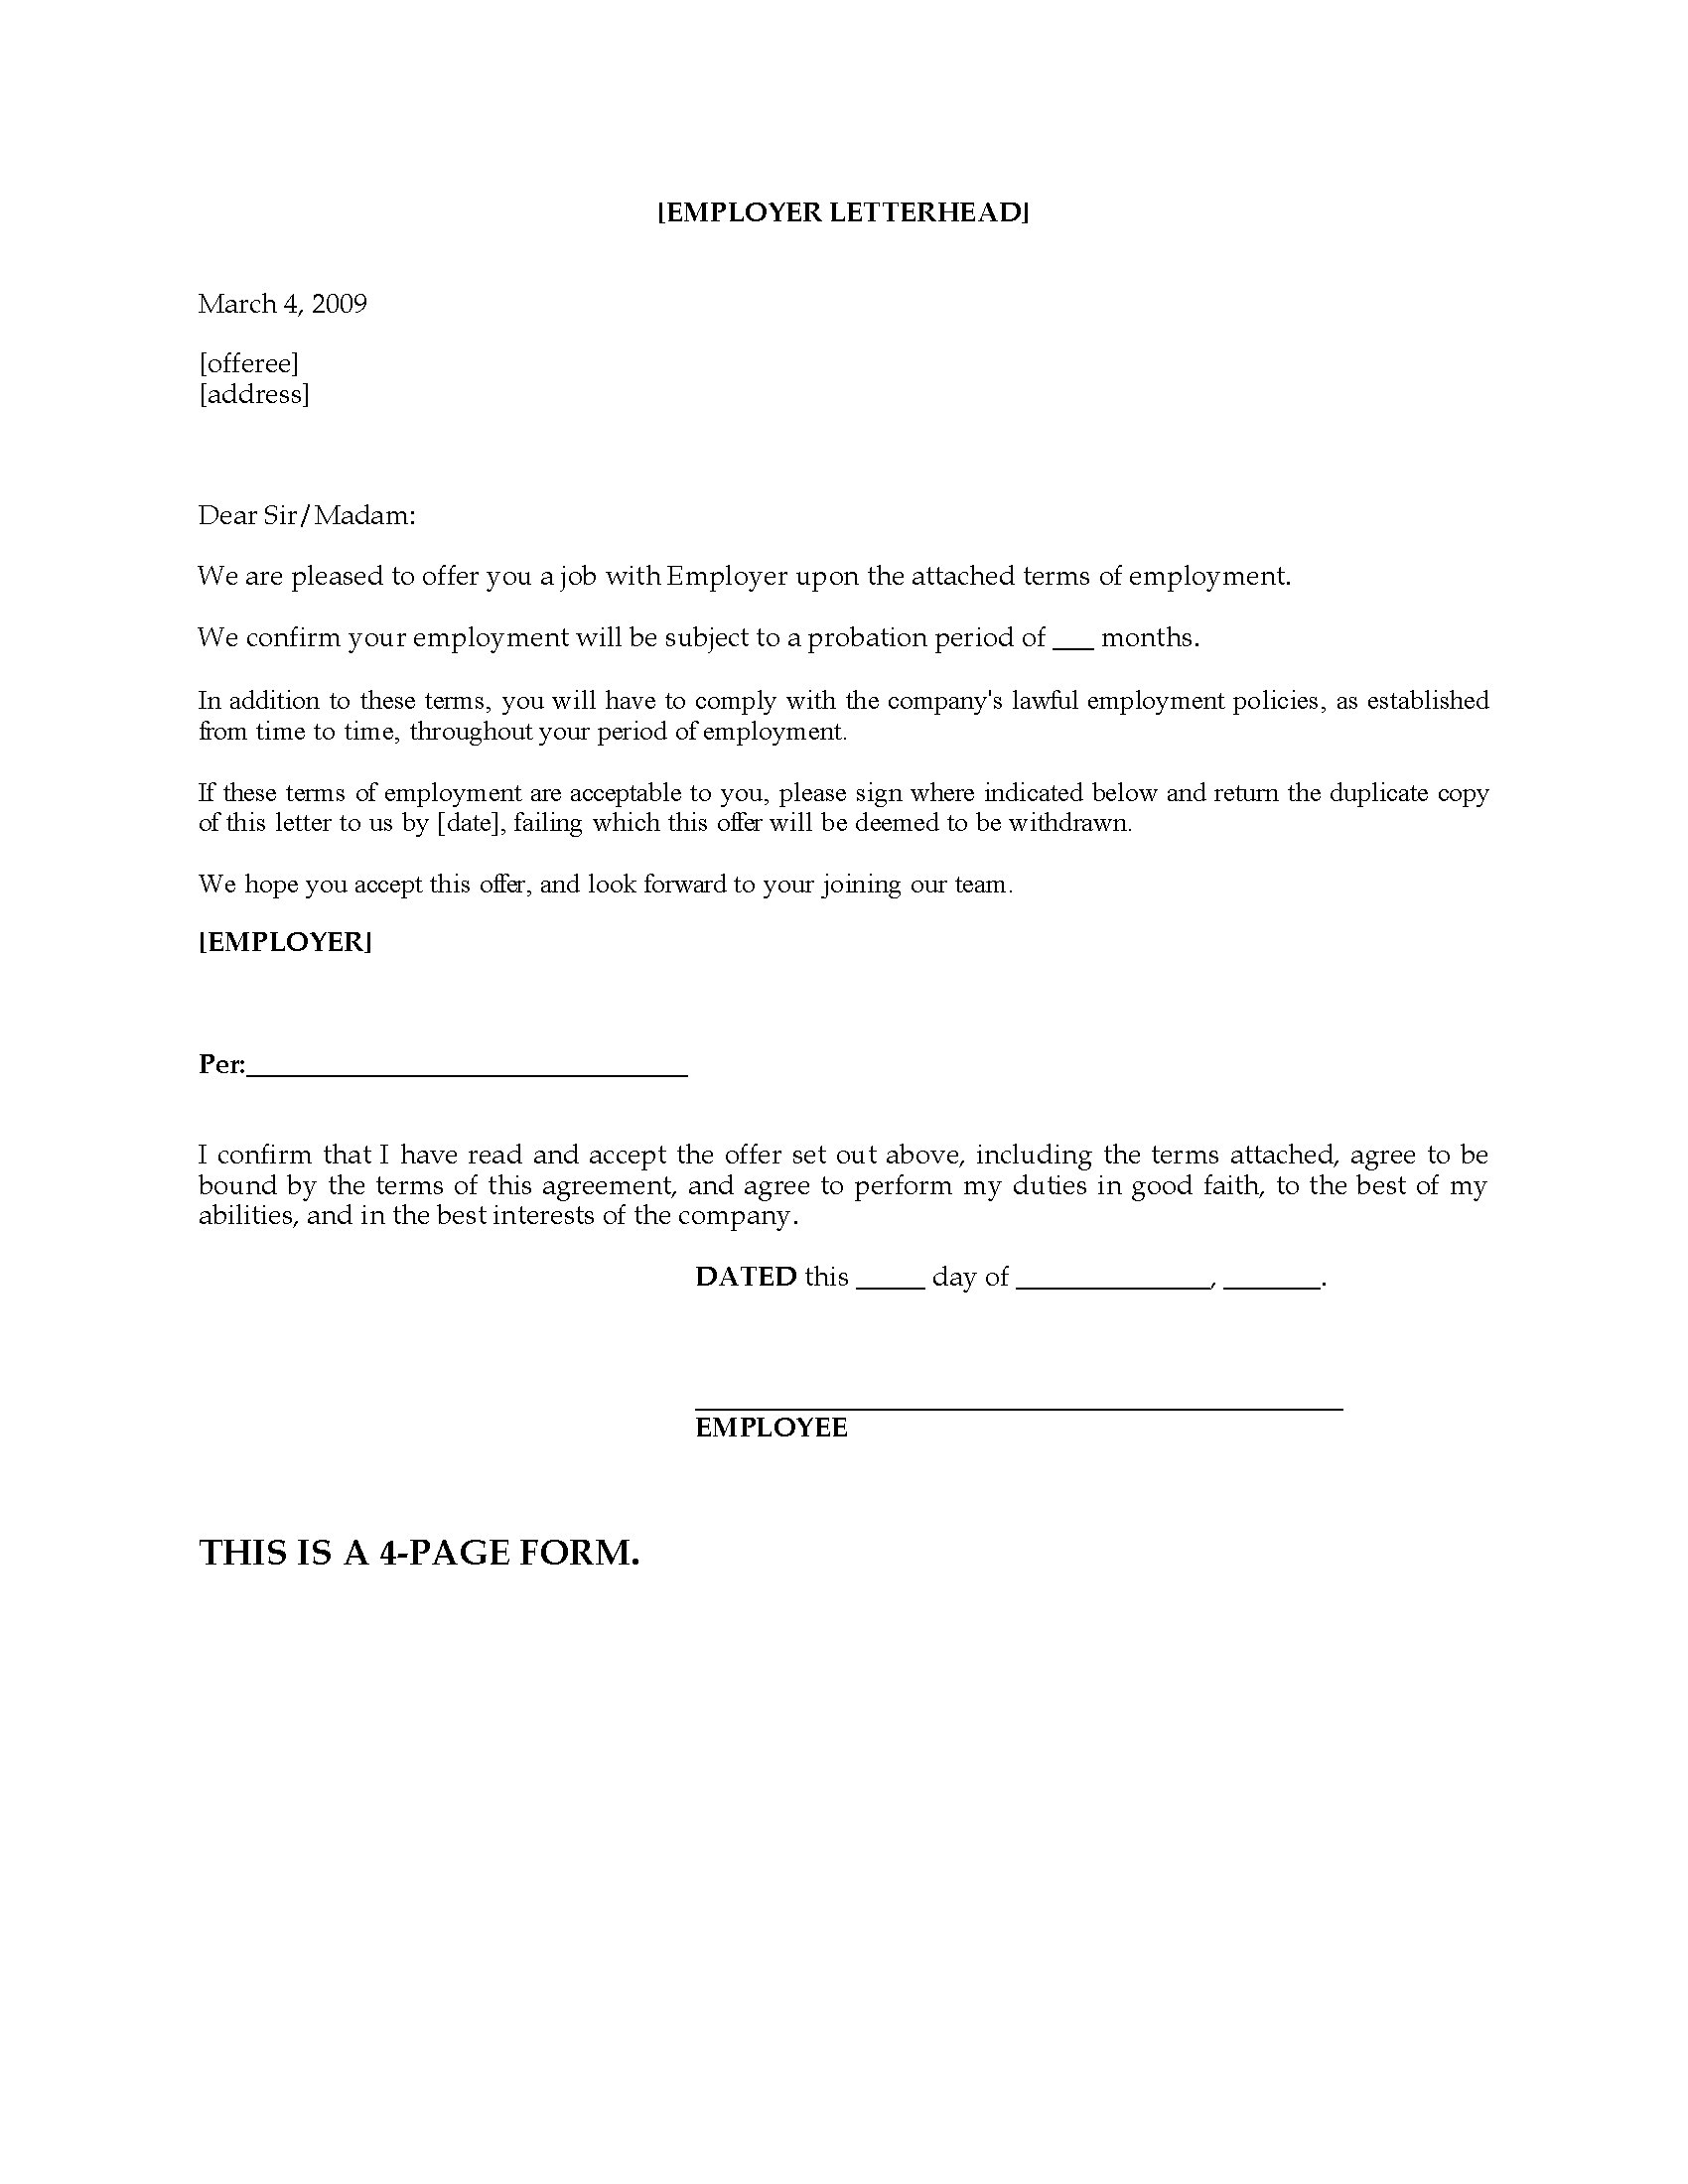 Confirm letter of employment militaryalicious confirm letter of employment spiritdancerdesigns Choice Image